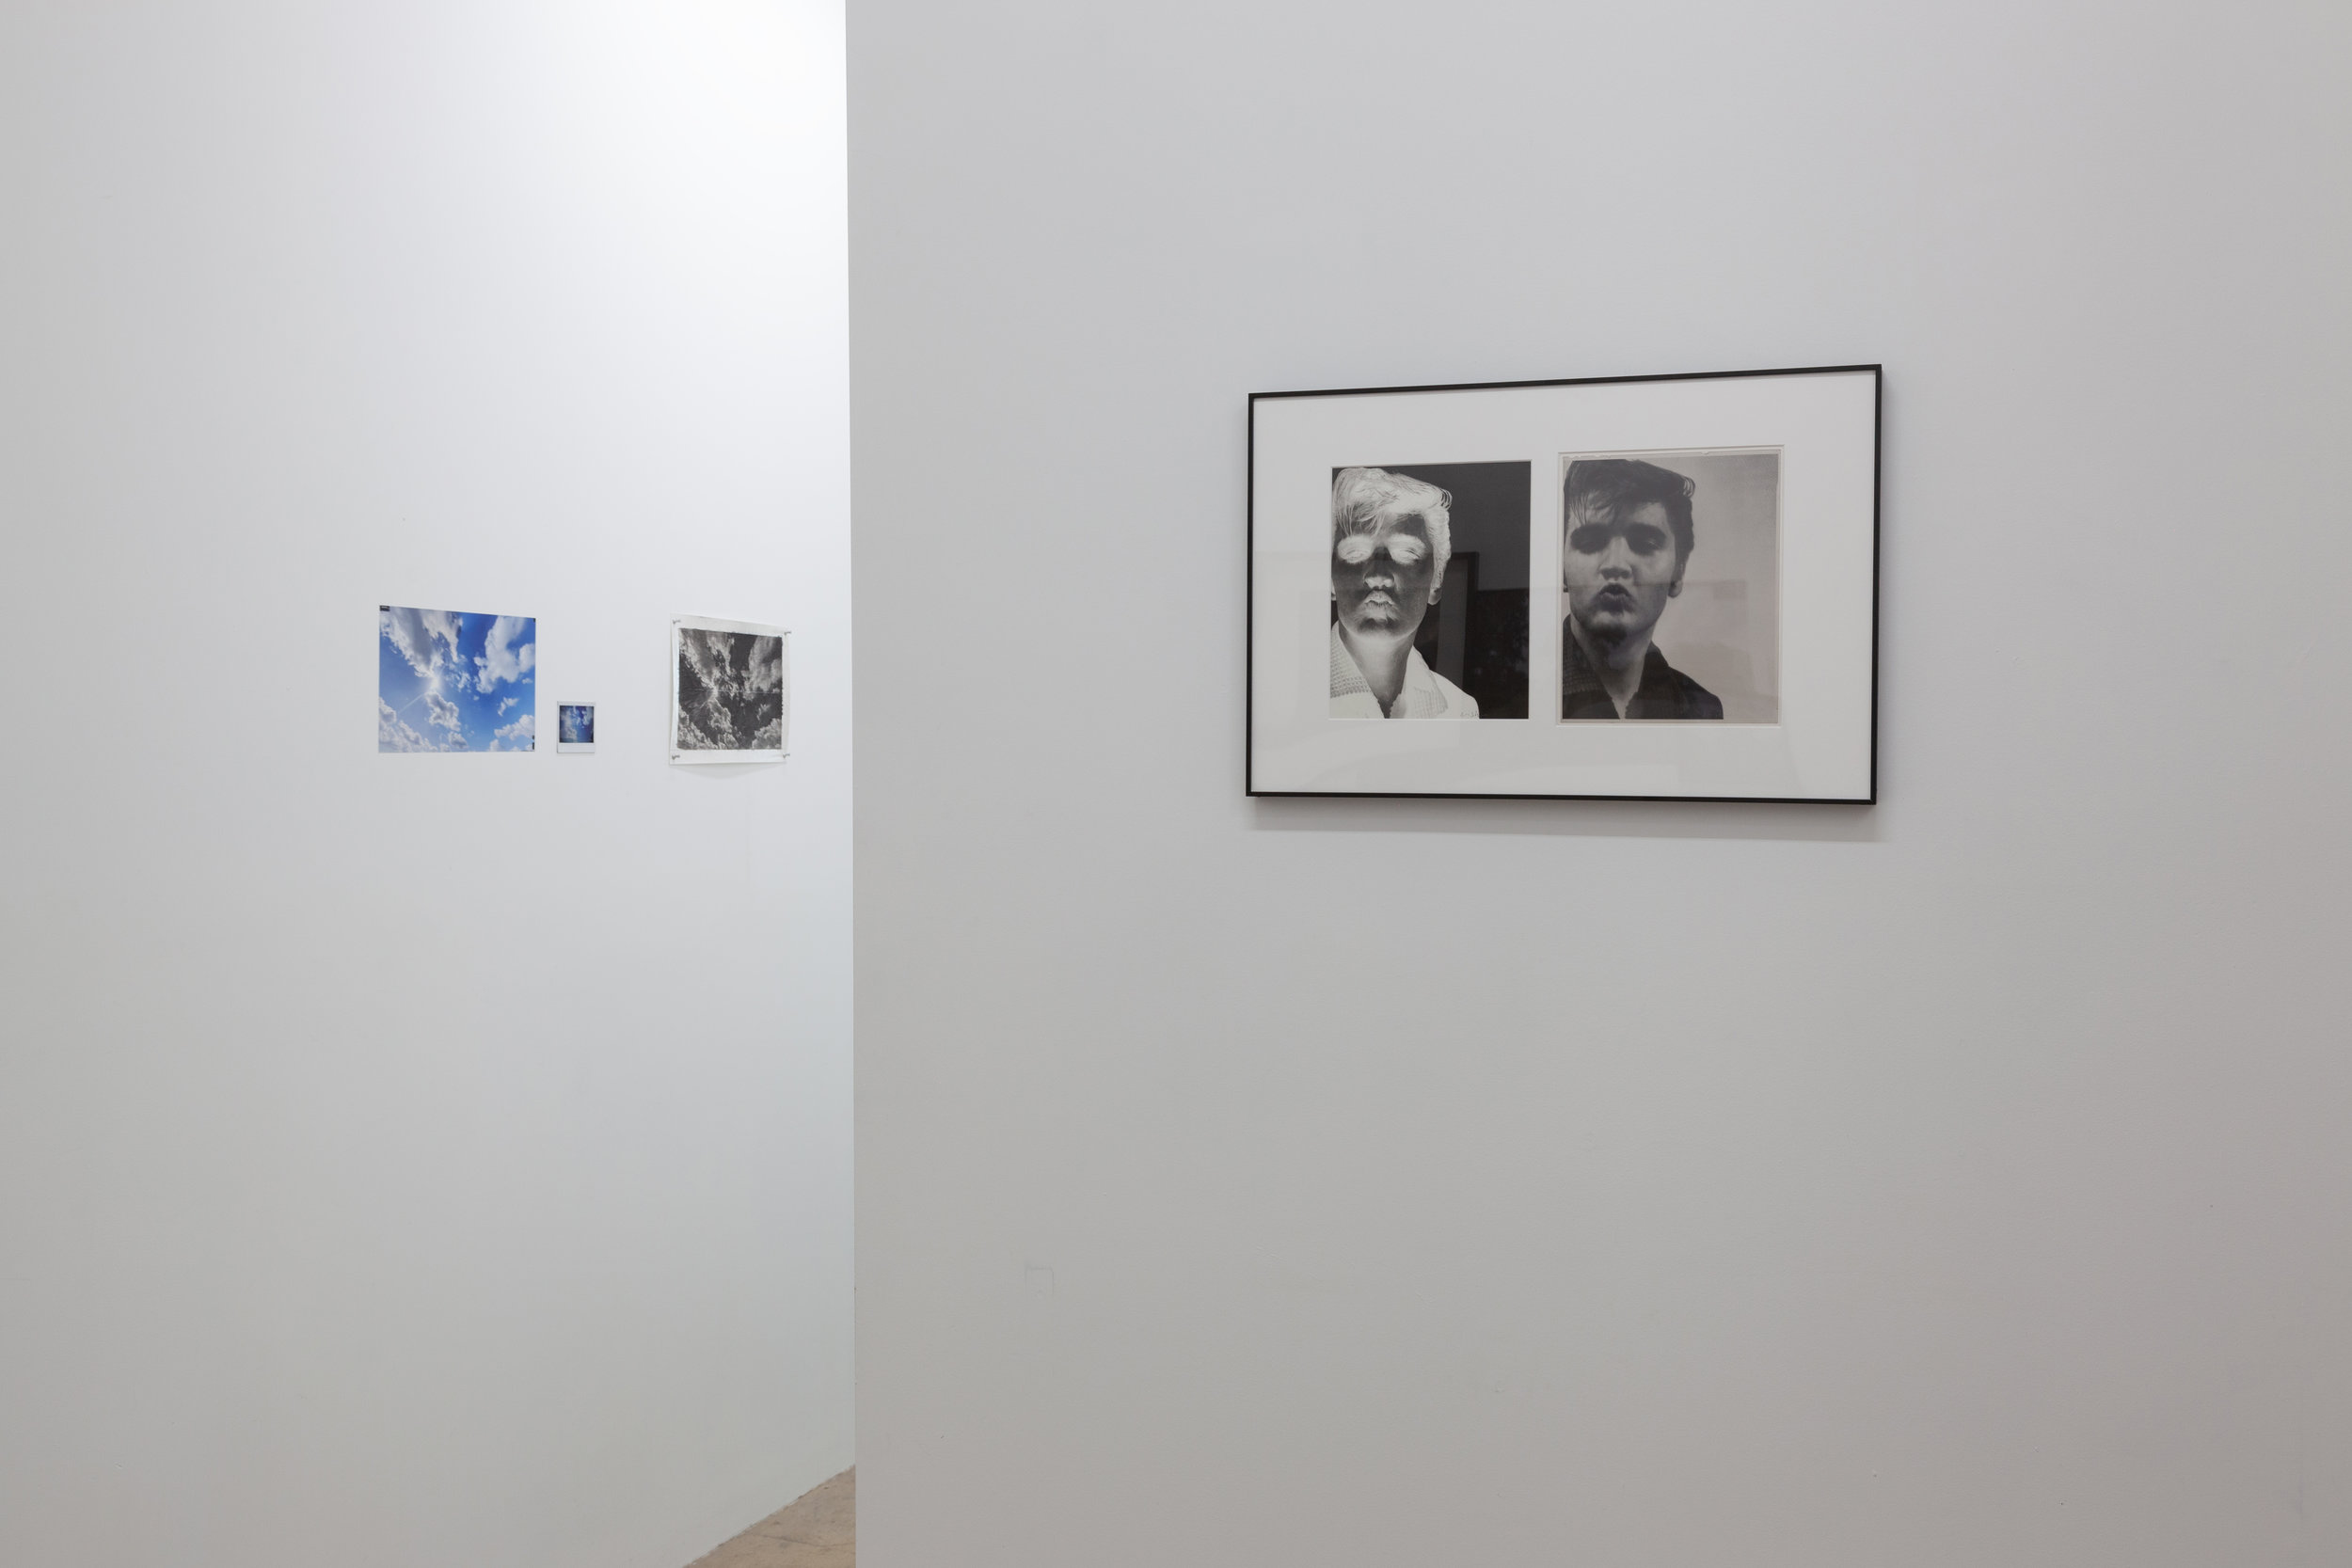 On Left:  Sketch – Sky , 2019. Charcoal on pages of  On the Road  archival pigment print.  On Right:  Portrait - Elvis Presley , 2018-19. Ink and graphite on paper, black and white negative photographic plate.